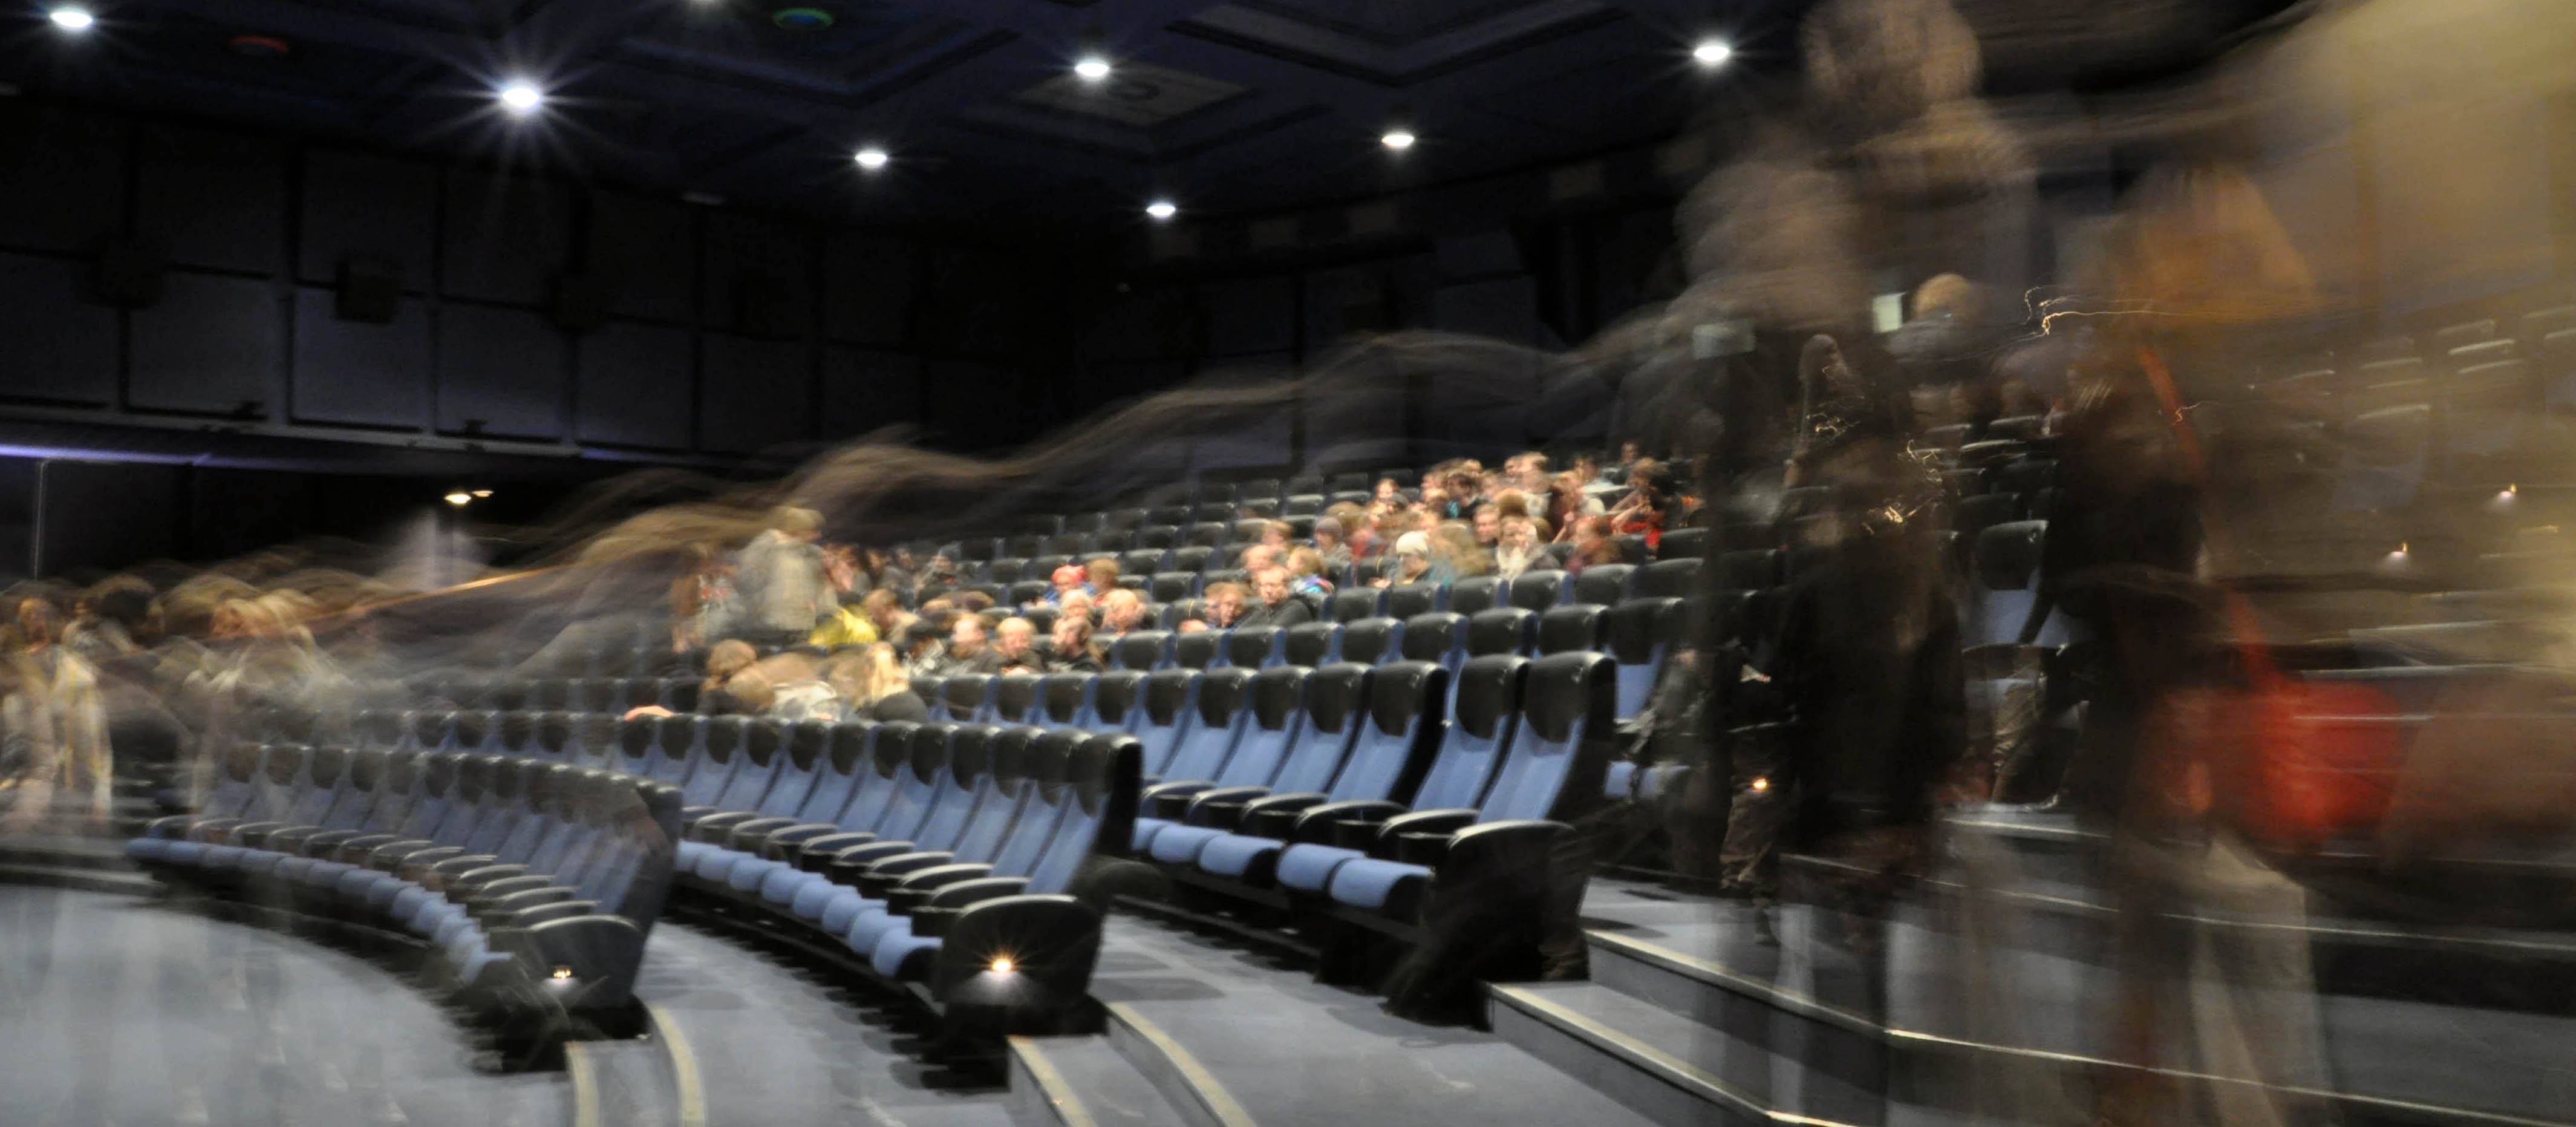 People in a cinema theatre. Photo.